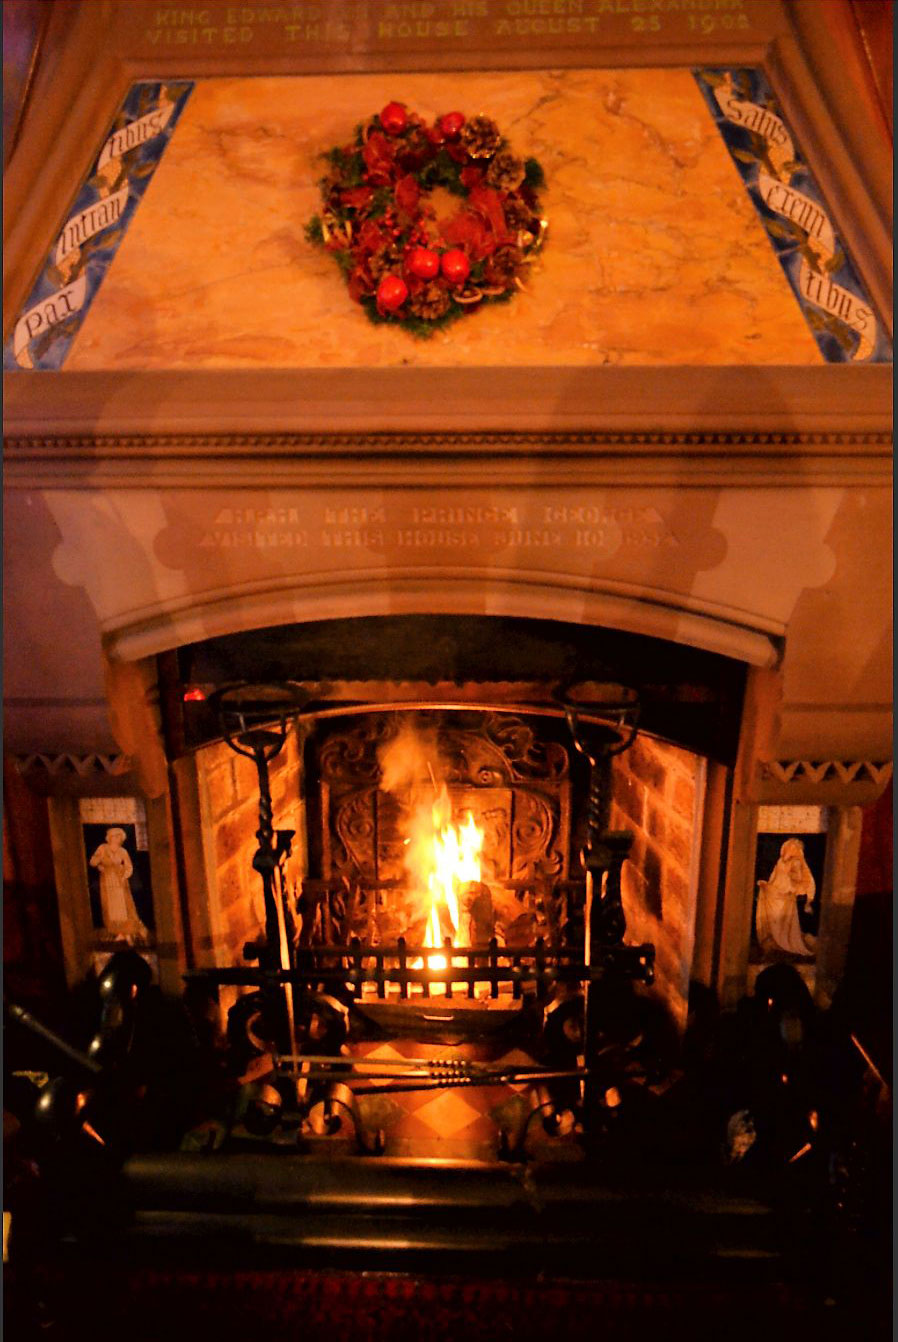 Tromode House hallway fireplace, with Morris, Marshall, and Faulkner Cinderella side panels